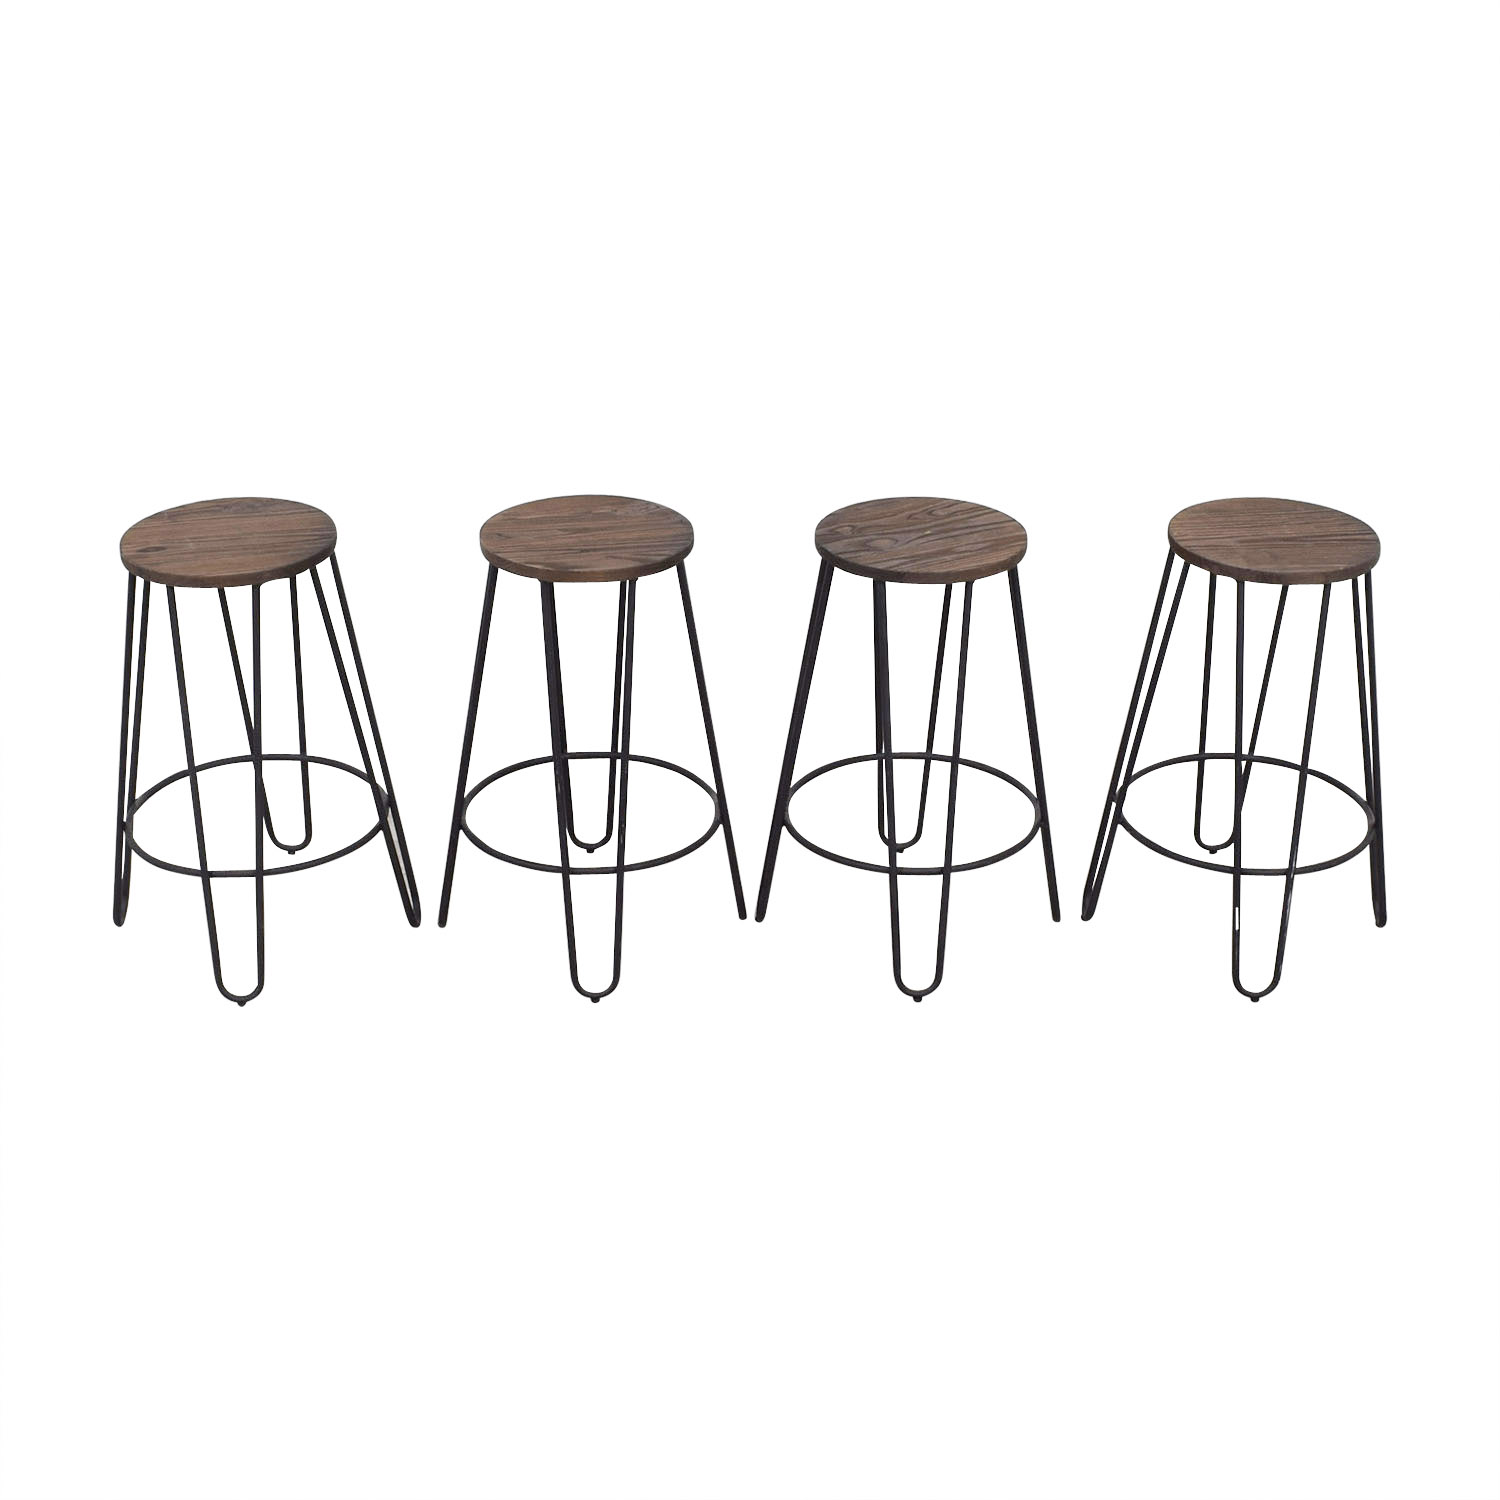 Black Wood and Metal Stools second hand